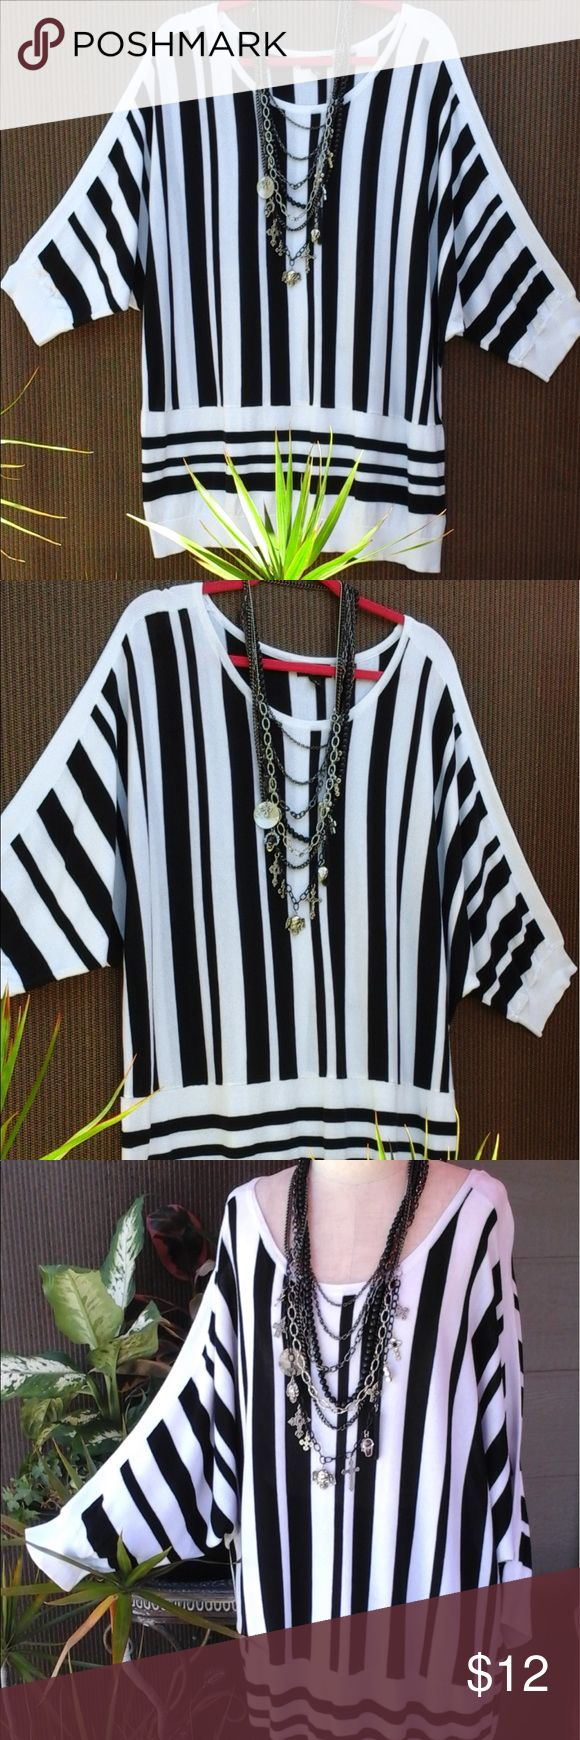 """""""ana"""" black and white striped top This black and white striped top is made of a lightweight sweater type fabric. It has a round neck and batwing sleeves. Top is made of 60% rayon and 40% cotton. The length from the back of the neck to the hem is 29"""" ana Sweaters Crew & Scoop Necks"""